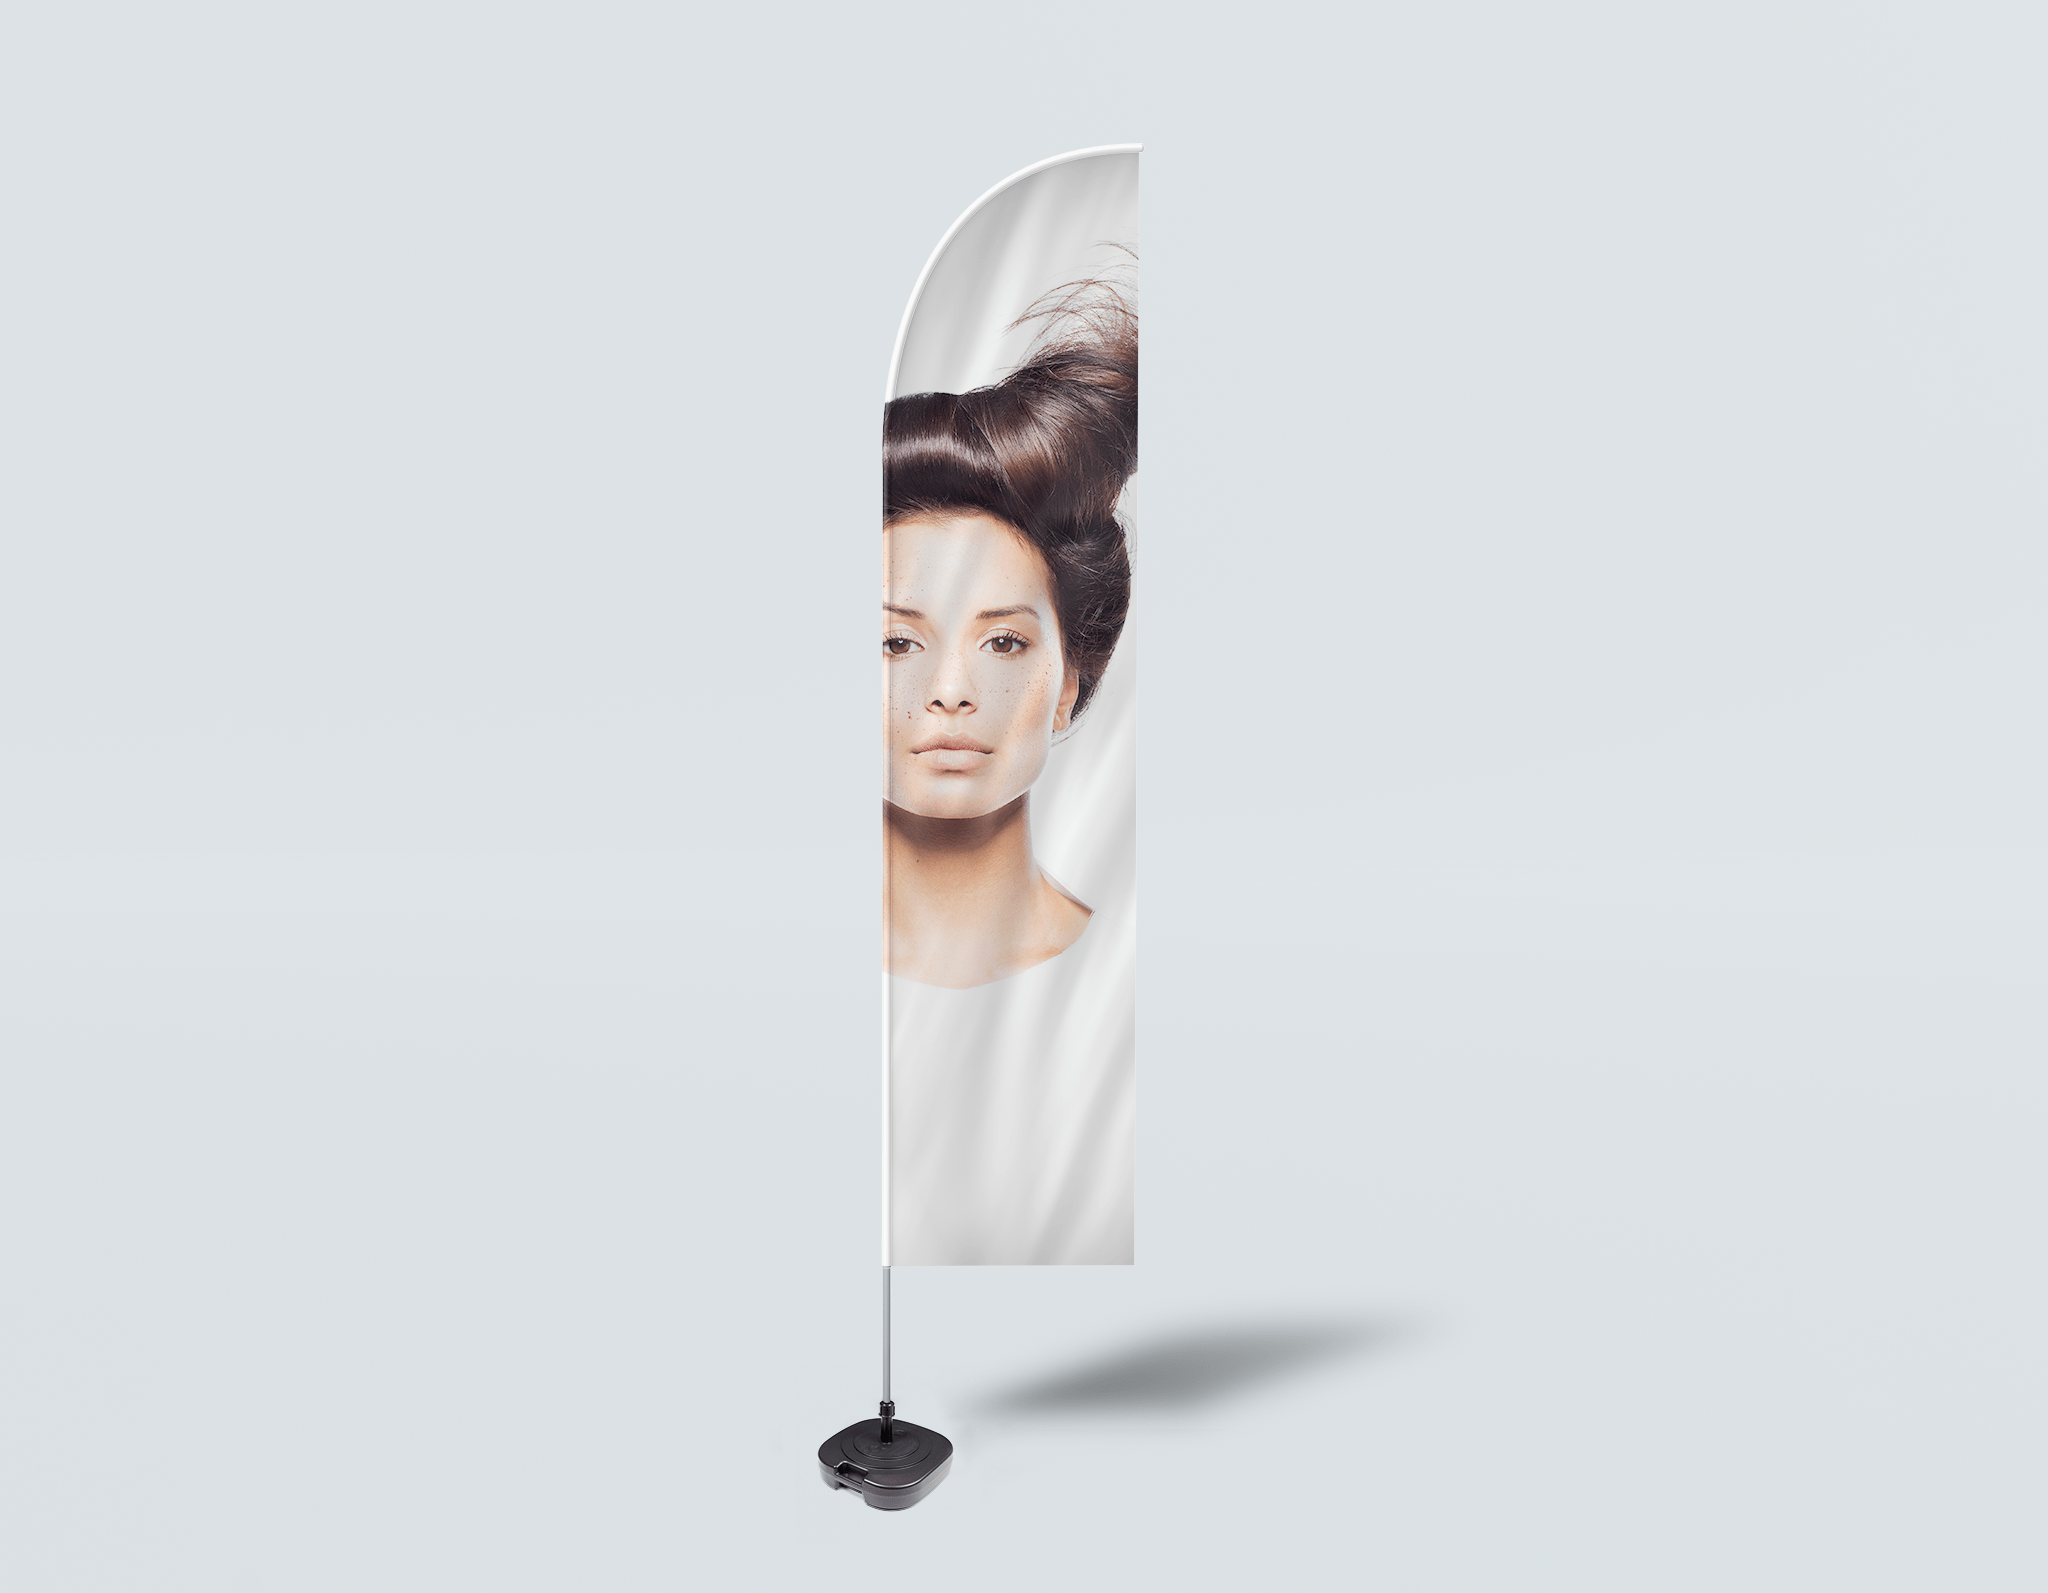 Salon Beach Flag - Frau in Front Quiff Frisur mit Baum Grafik Design Kleid